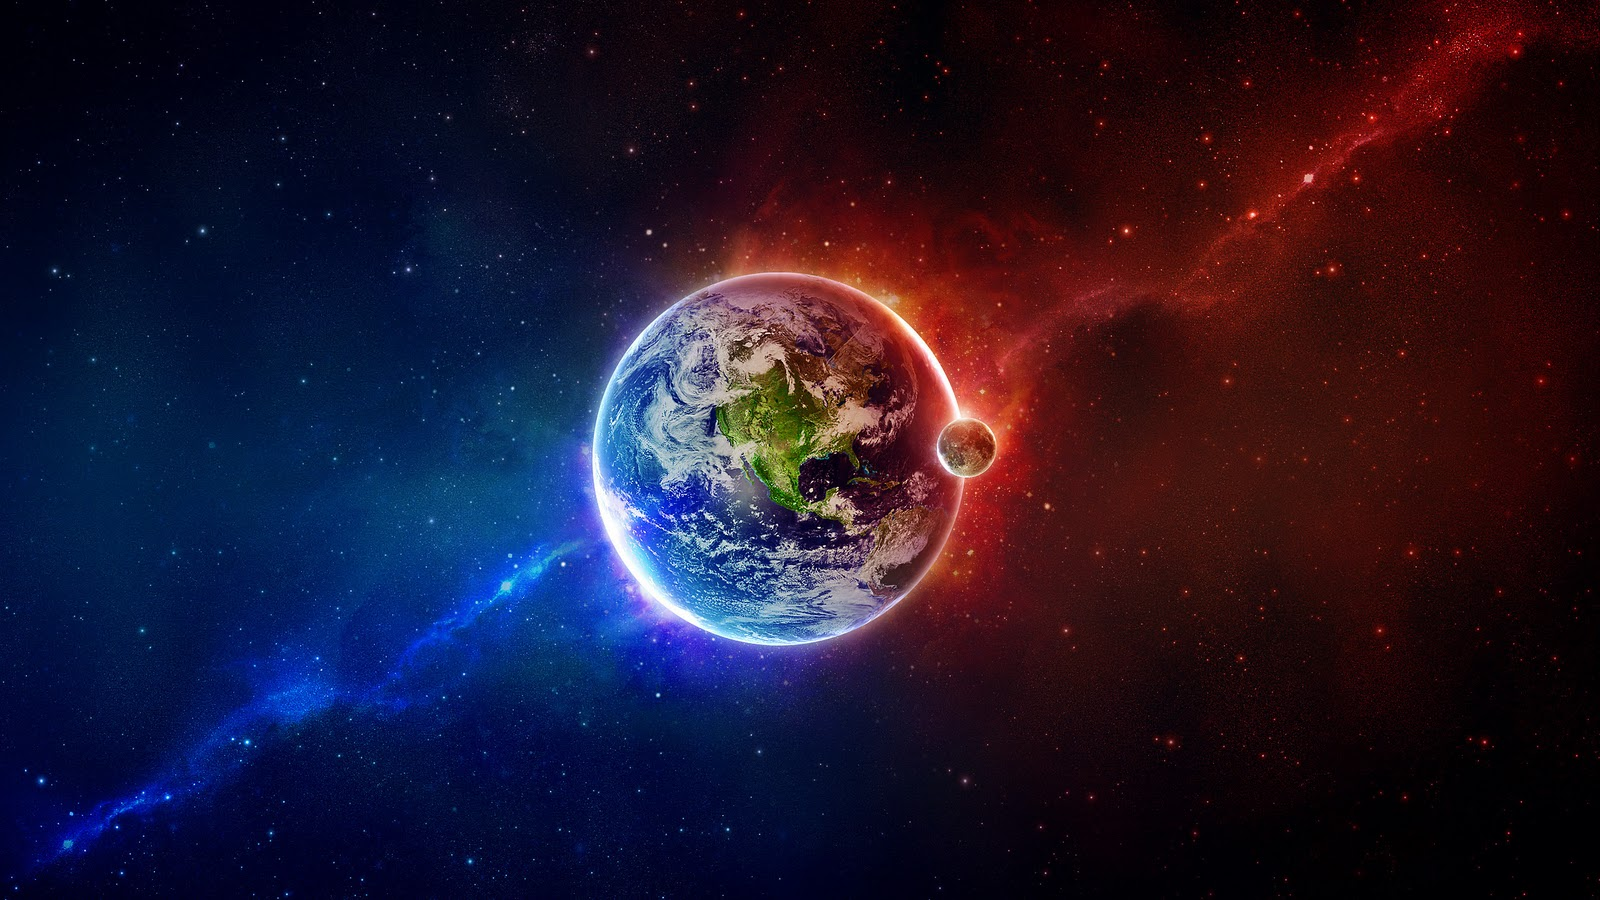 Enjoy this awesome epic HD wallpaper on your desktop You can download 1600x900